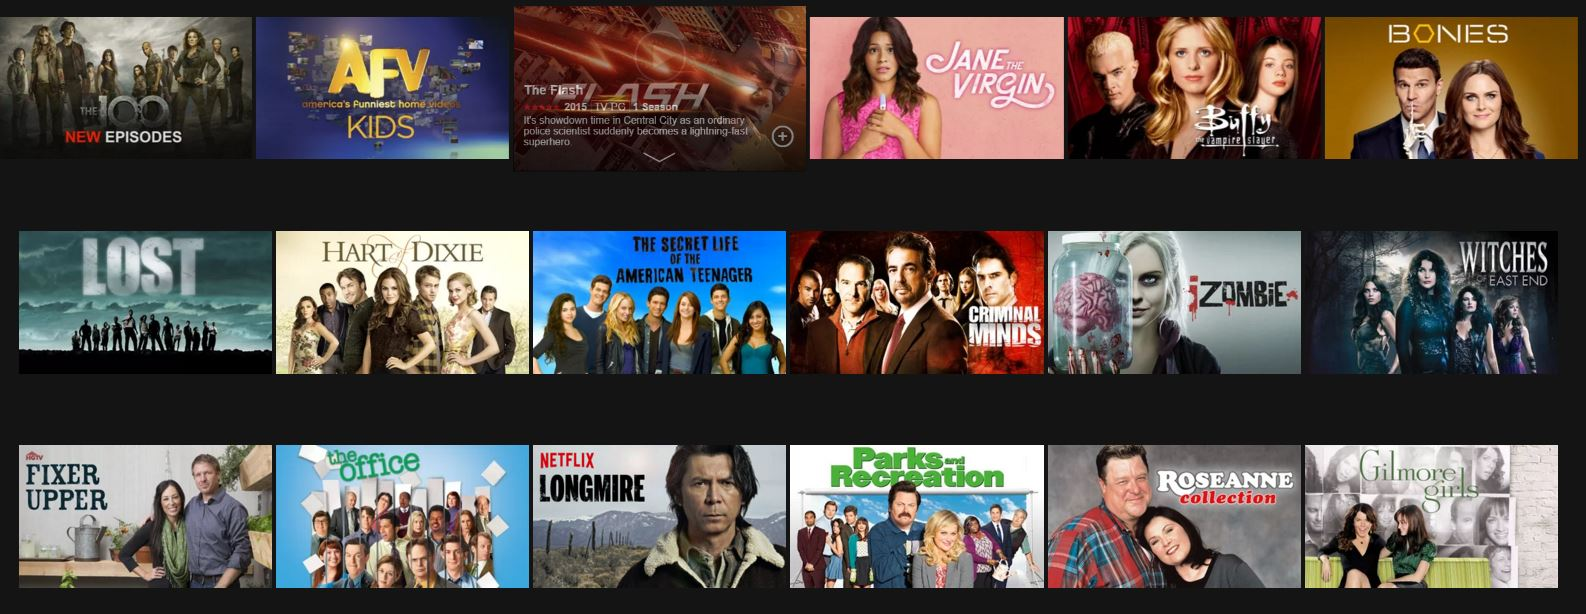 Netflix Serier Tips Tips For Tv Addicts From A Tv Addict | The Lydia Review